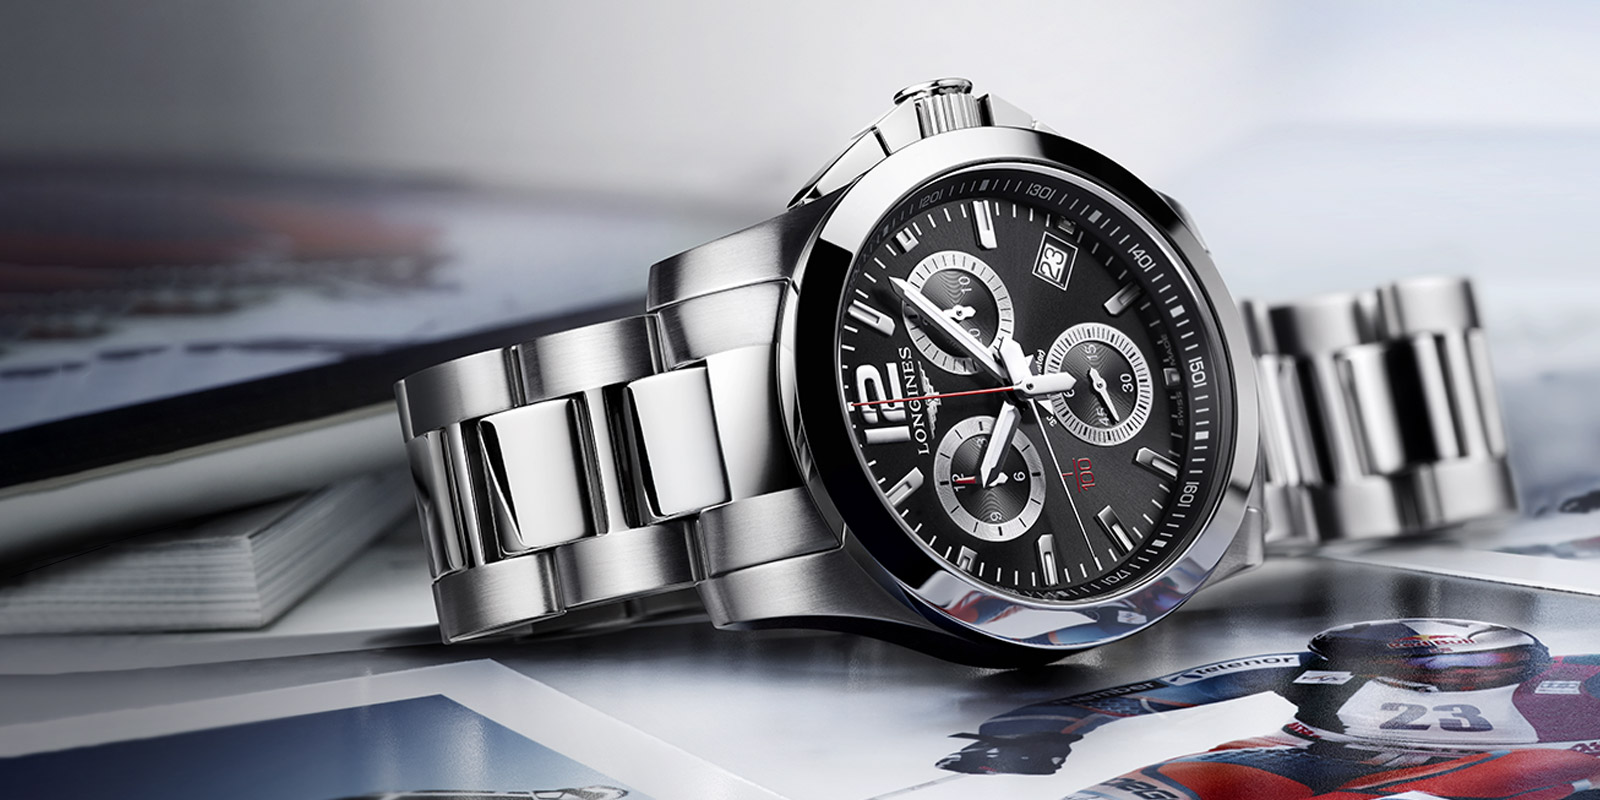 Replica Longines Sport Watches